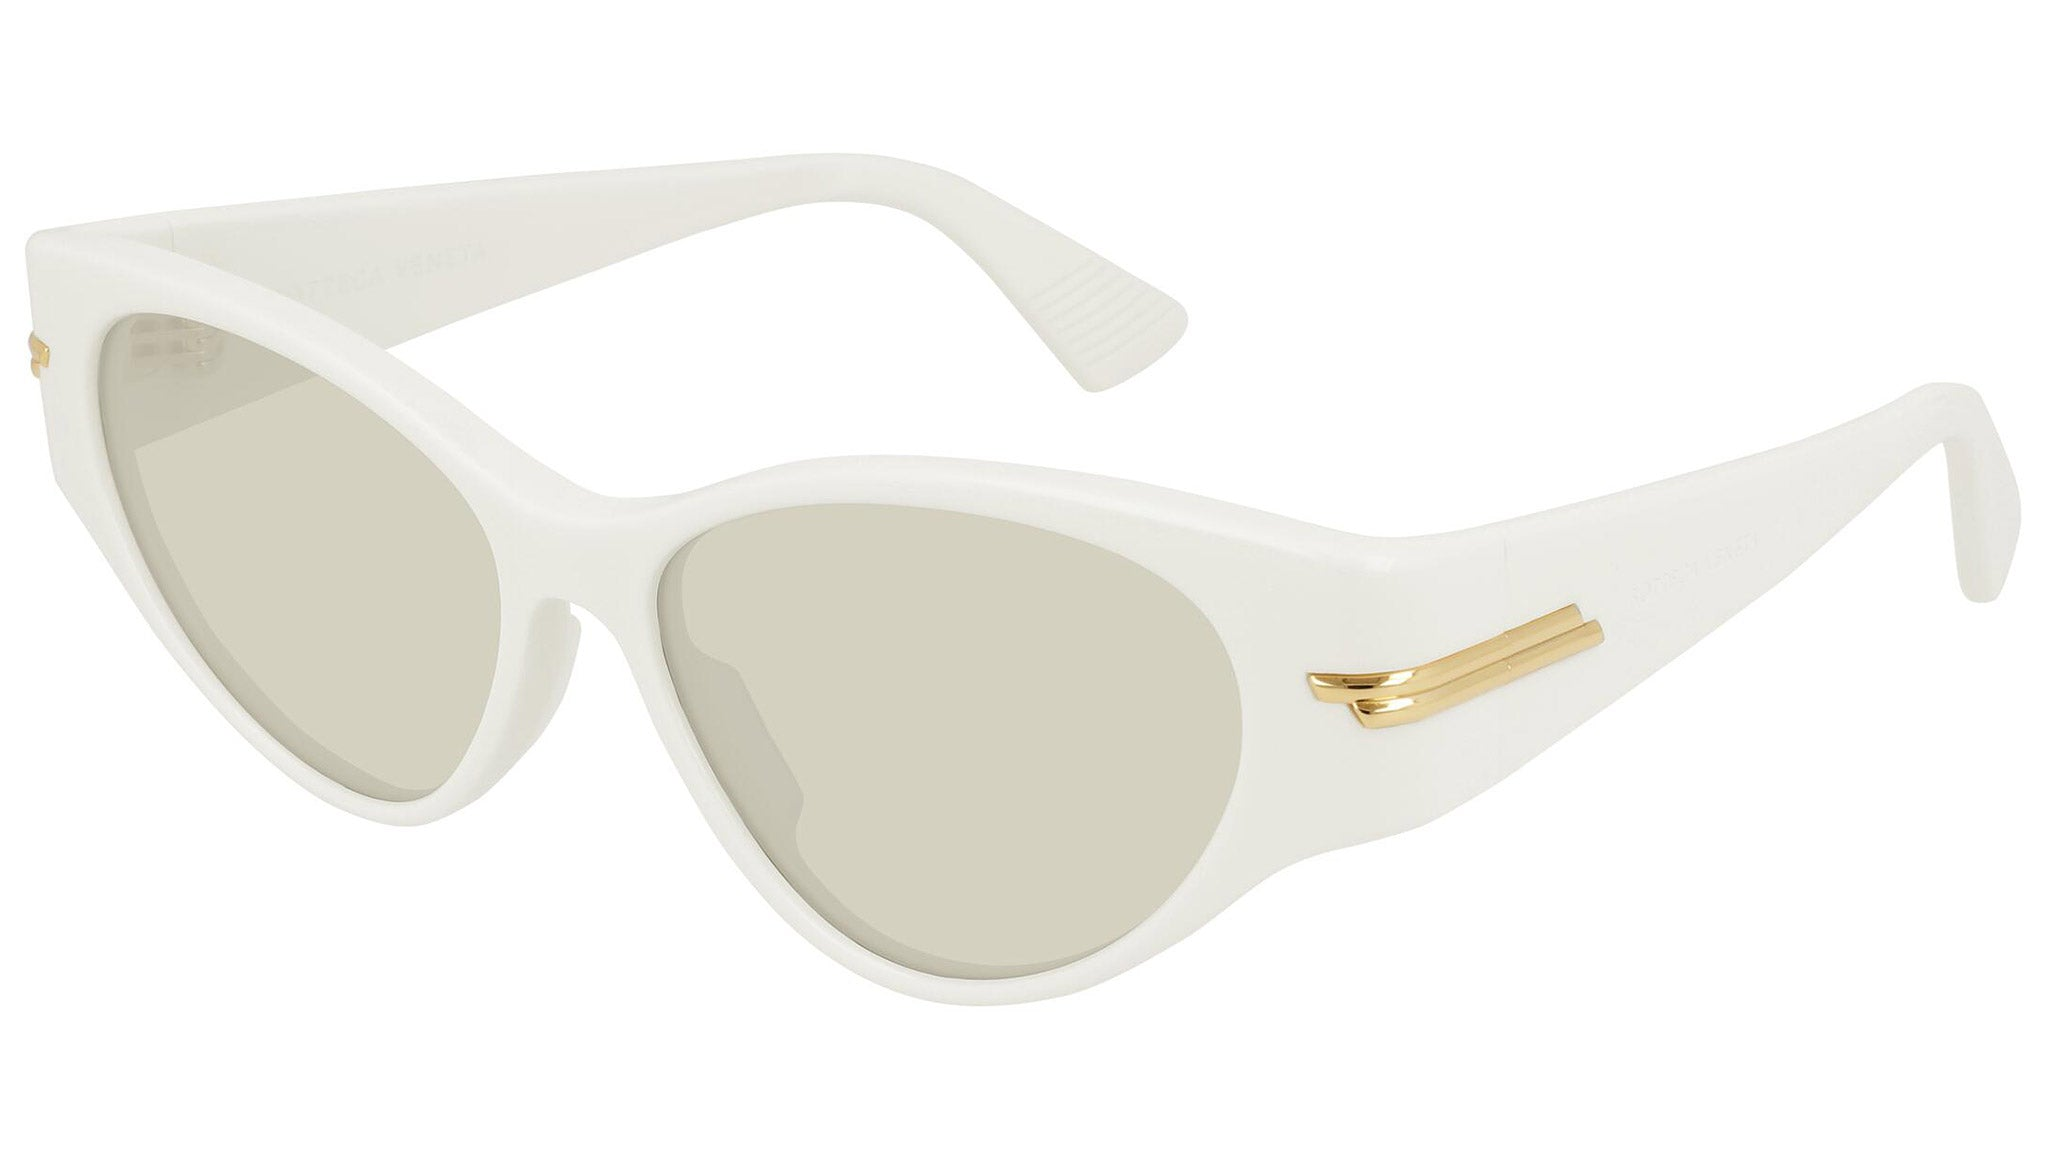 BV1002S 004 ivory and solid beige